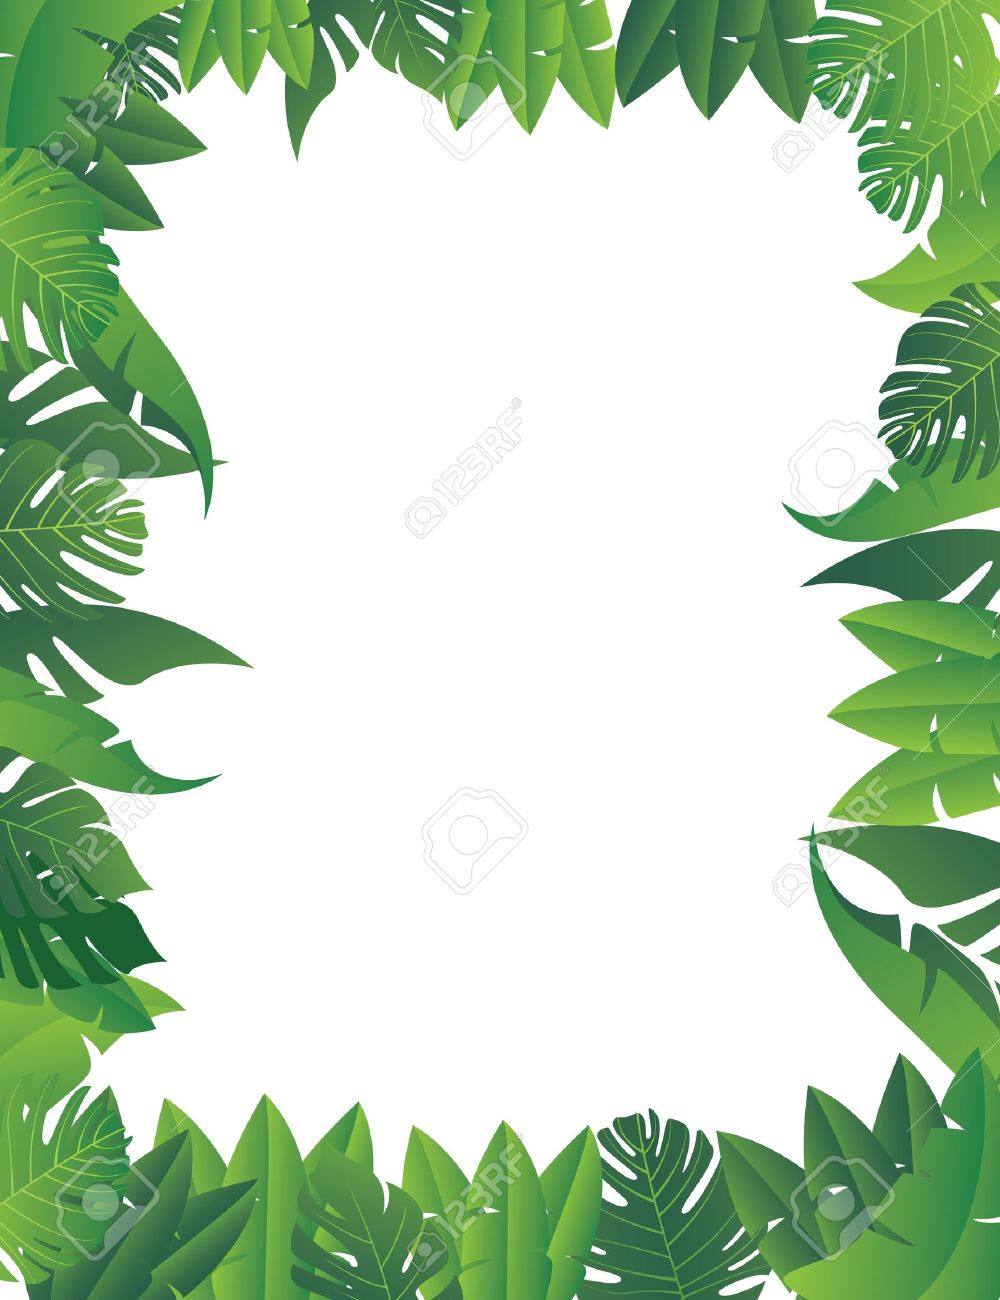 Print Summer Exotic Jungle Plant Tropical Image Vectorielle